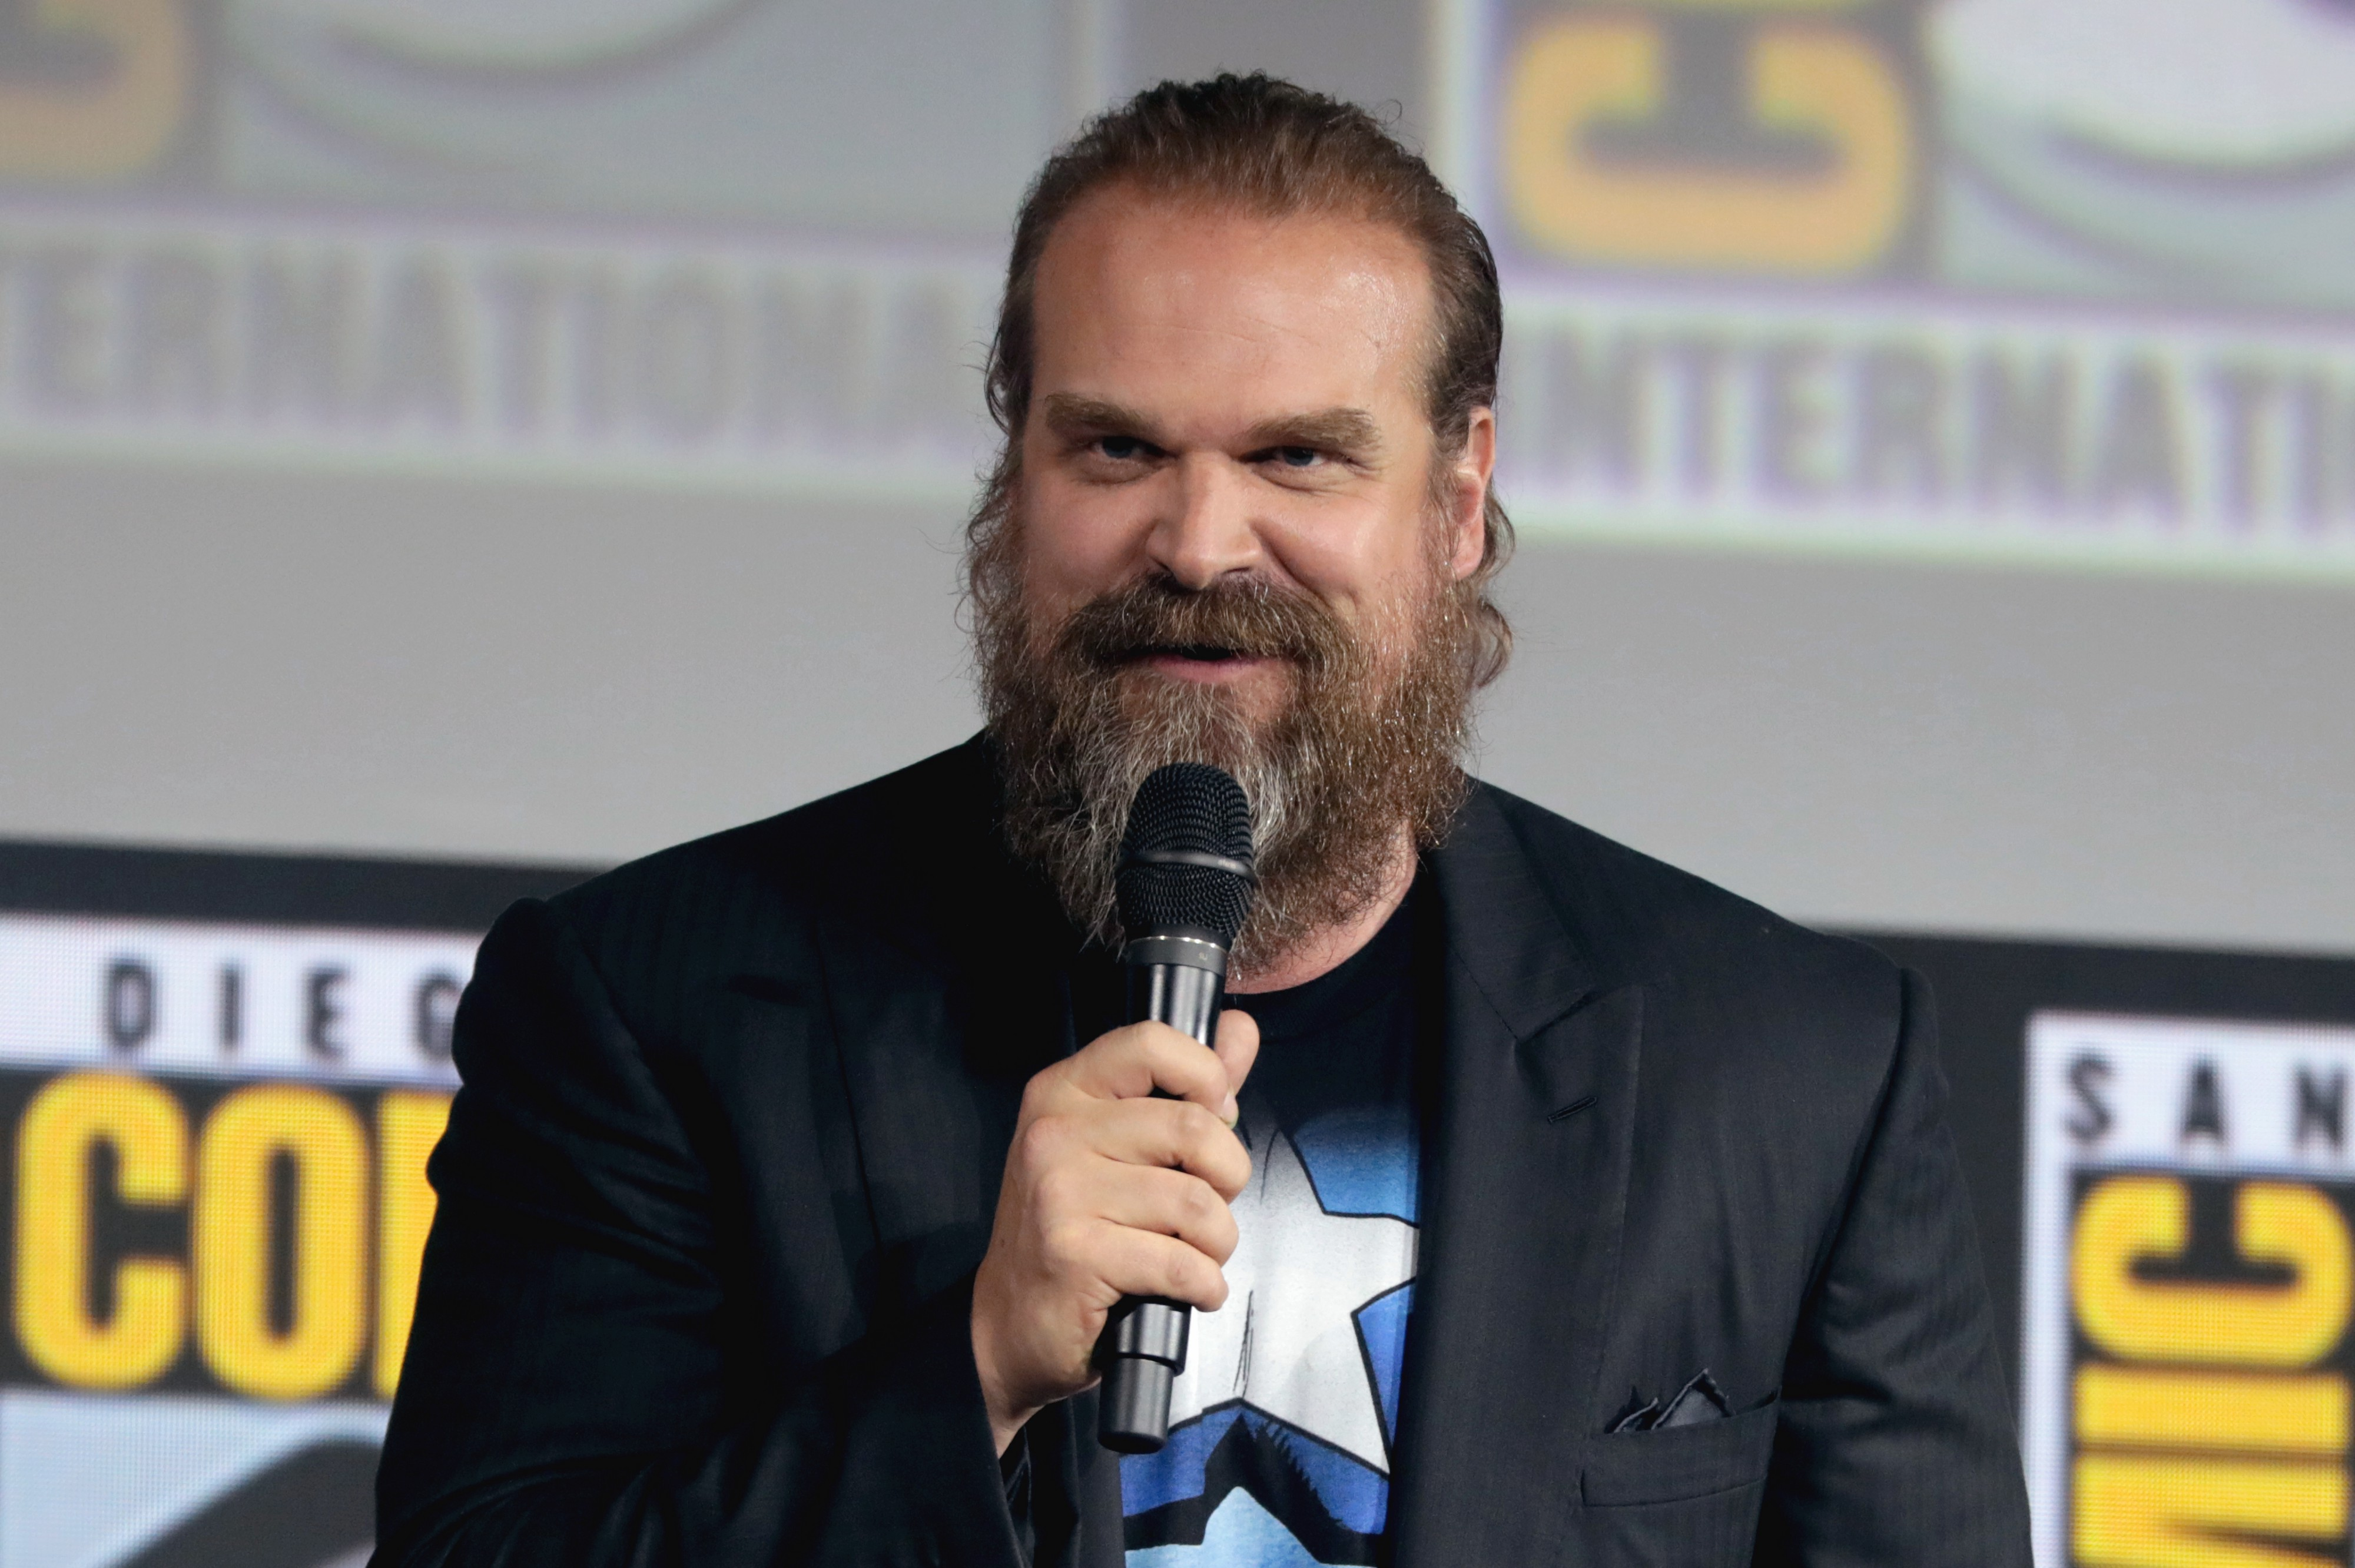 David Harbour holds a microphone.